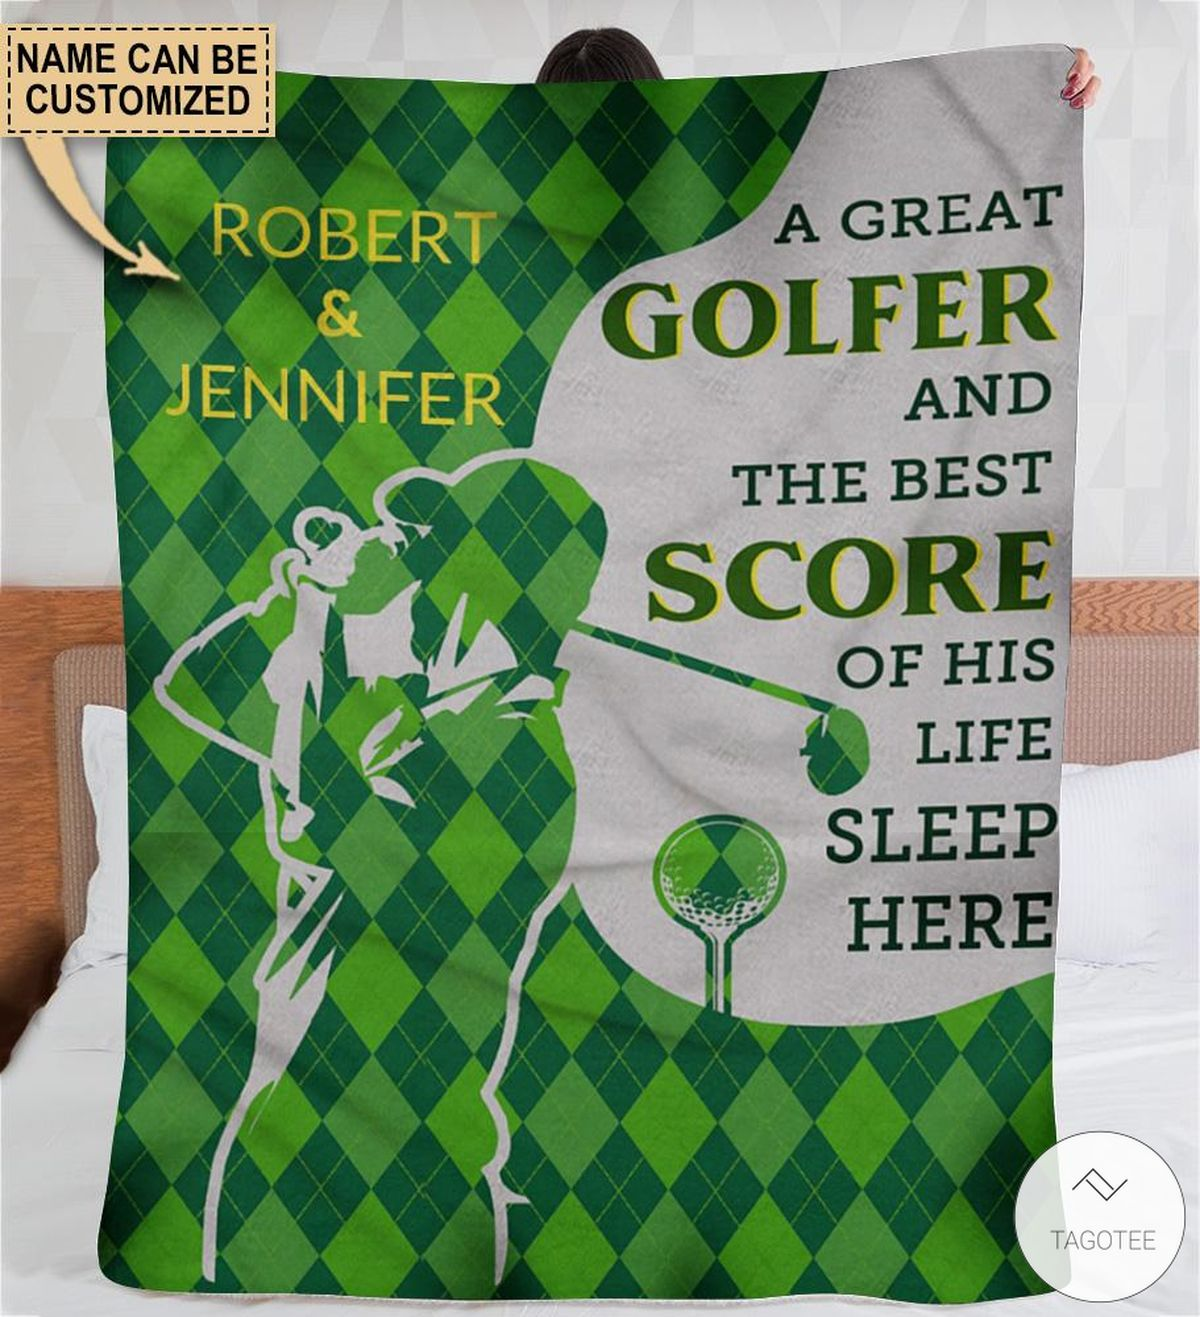 Personalized A Great Golfer And The Best Score Of His Life Sleep Here Fleece Blanket